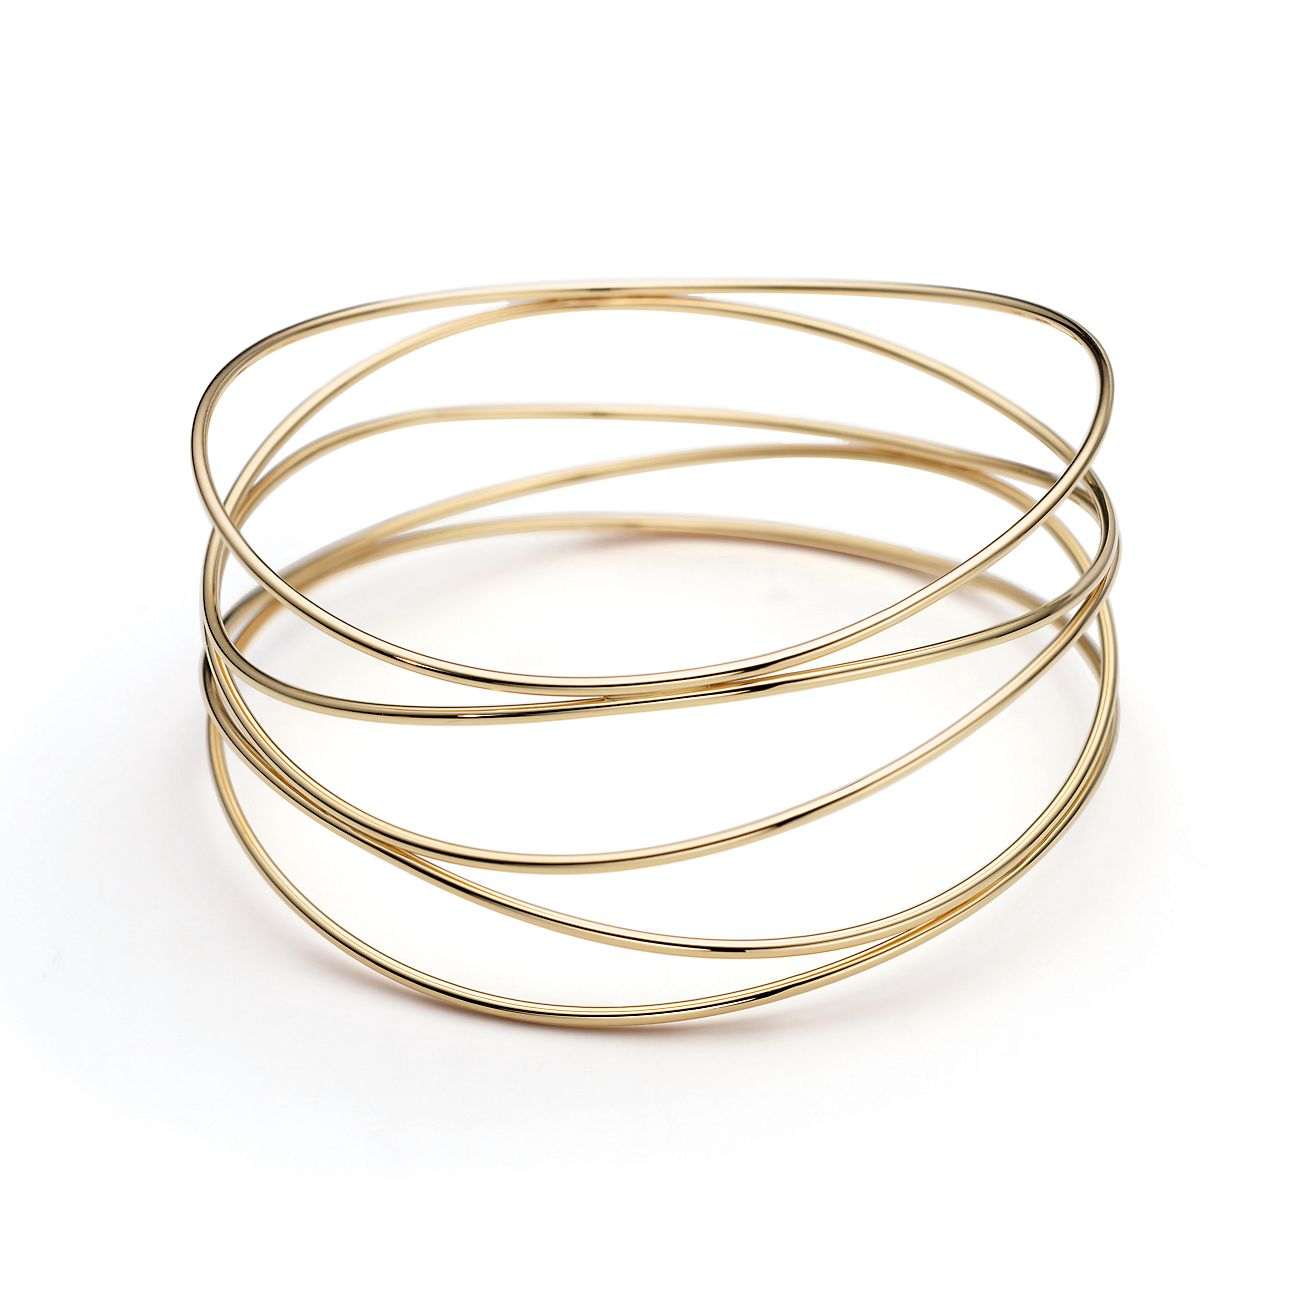 os bangle product large bangles bracelets christo cuff alternate size wide view lyon bracelet